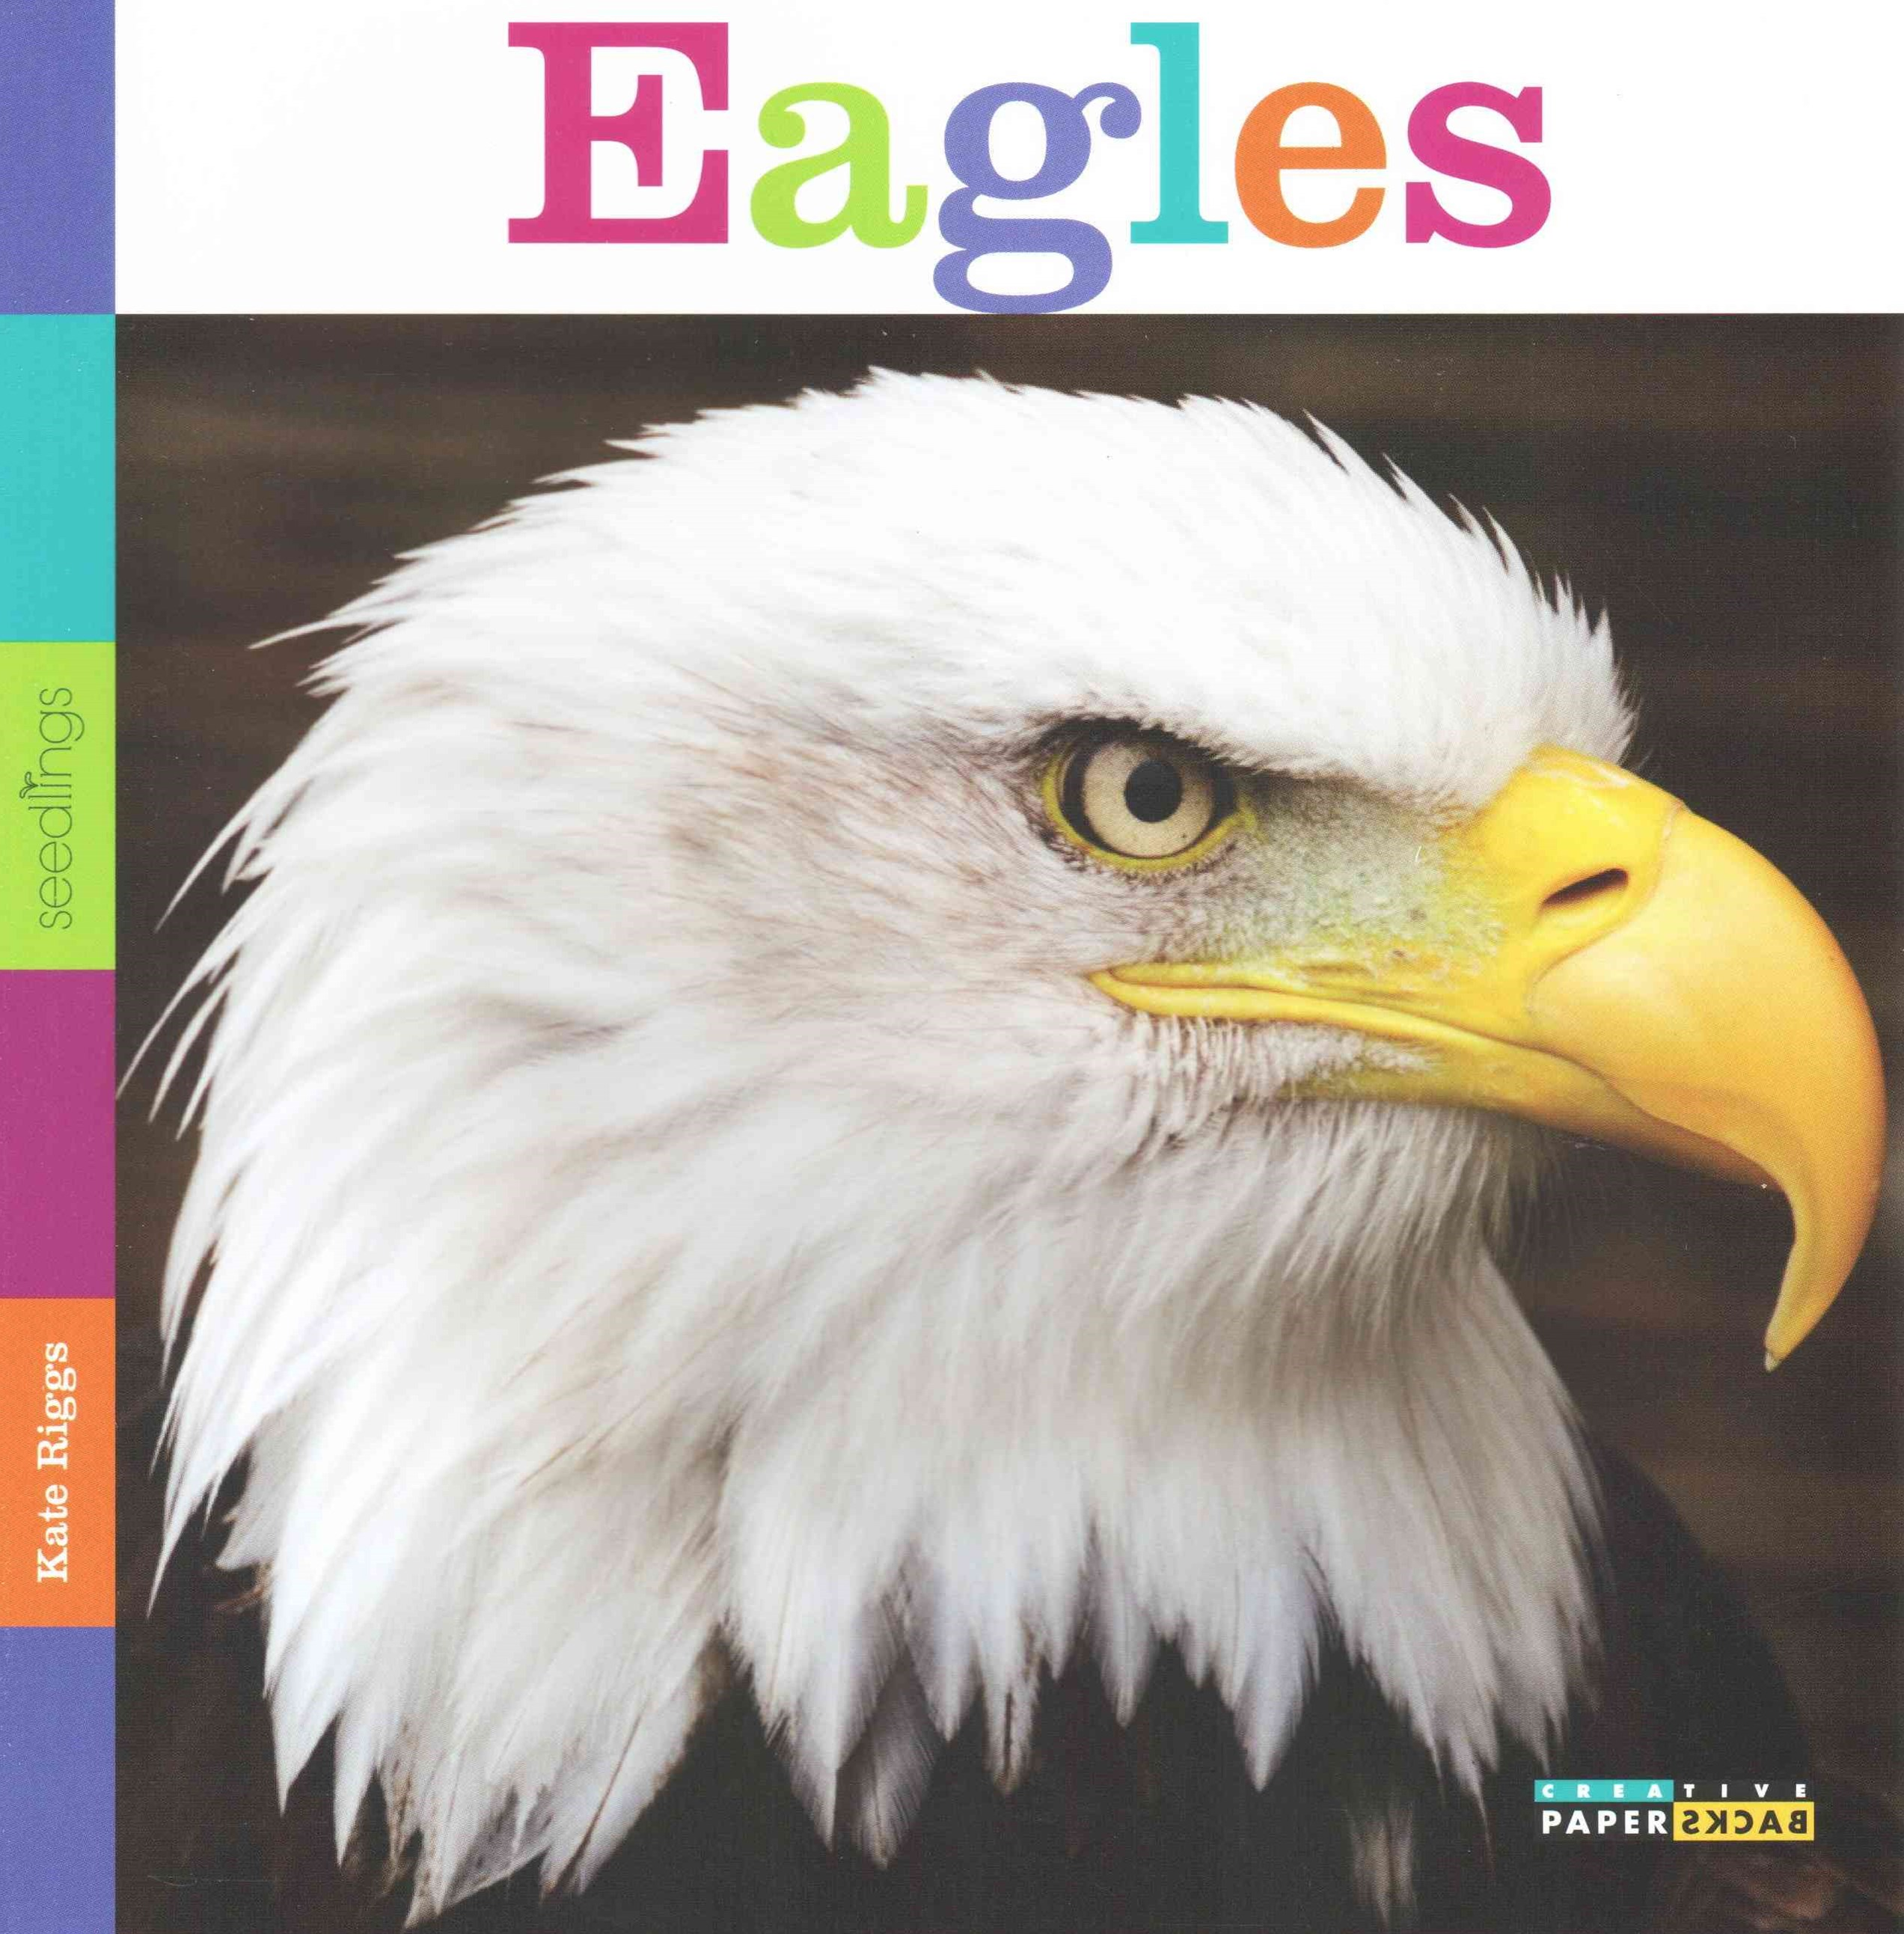 Seedlings: Eagles